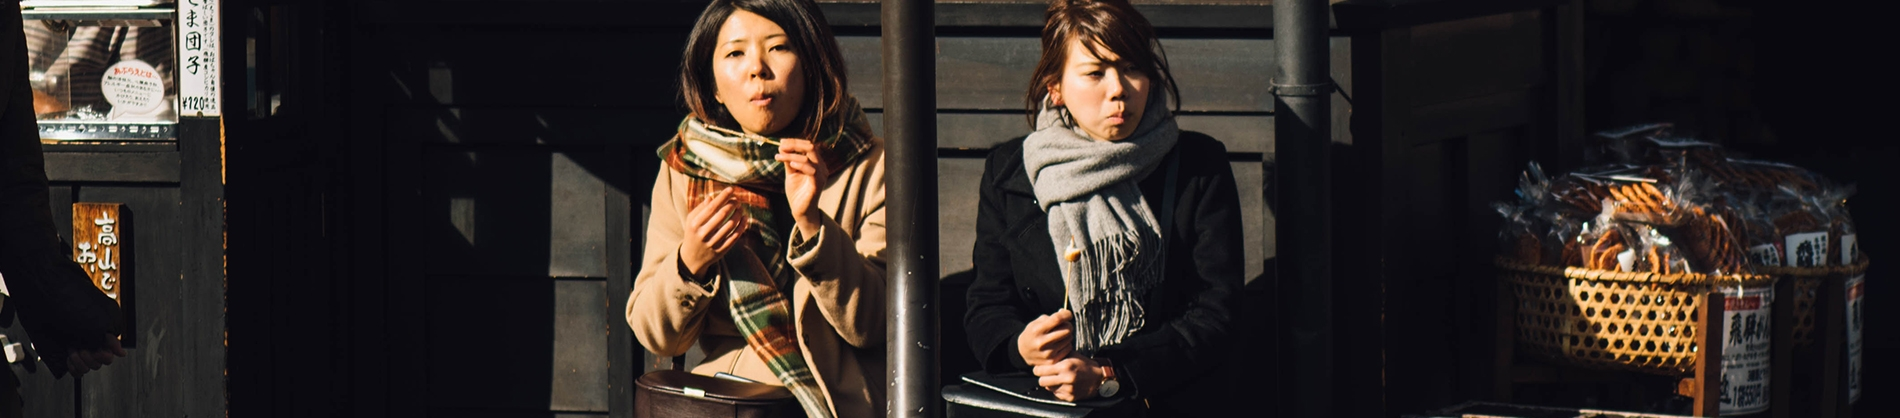 Two women sat on a bench eating